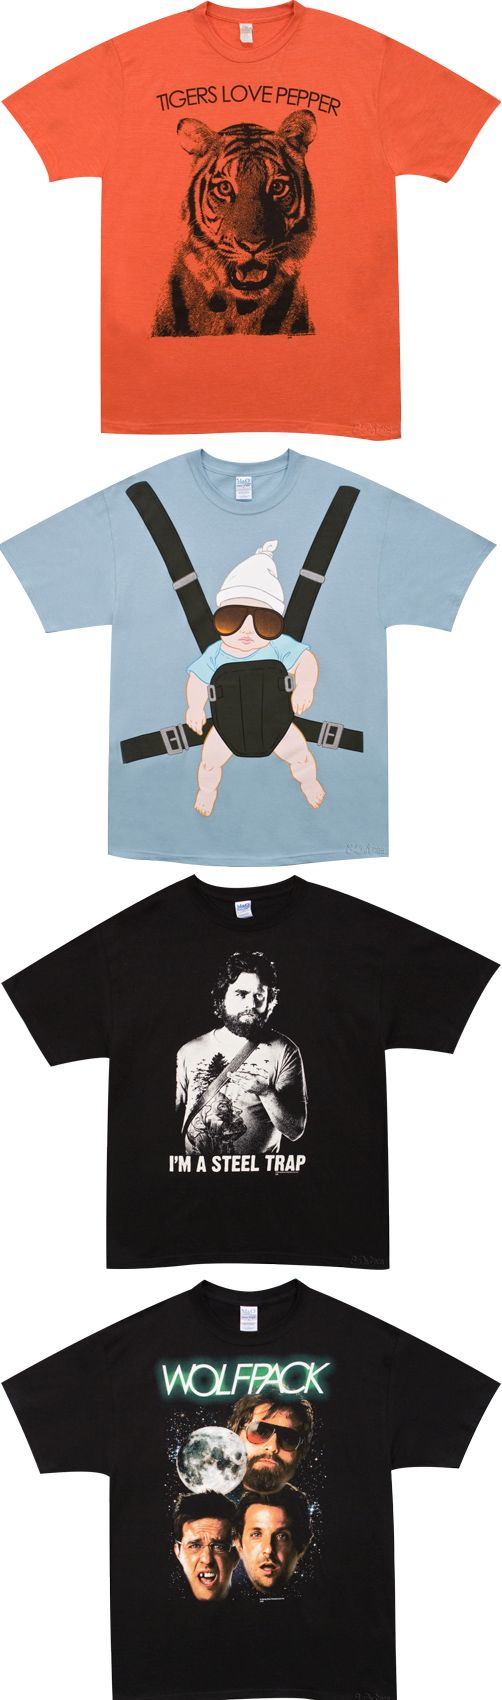 The Hangover t shirts.jpg